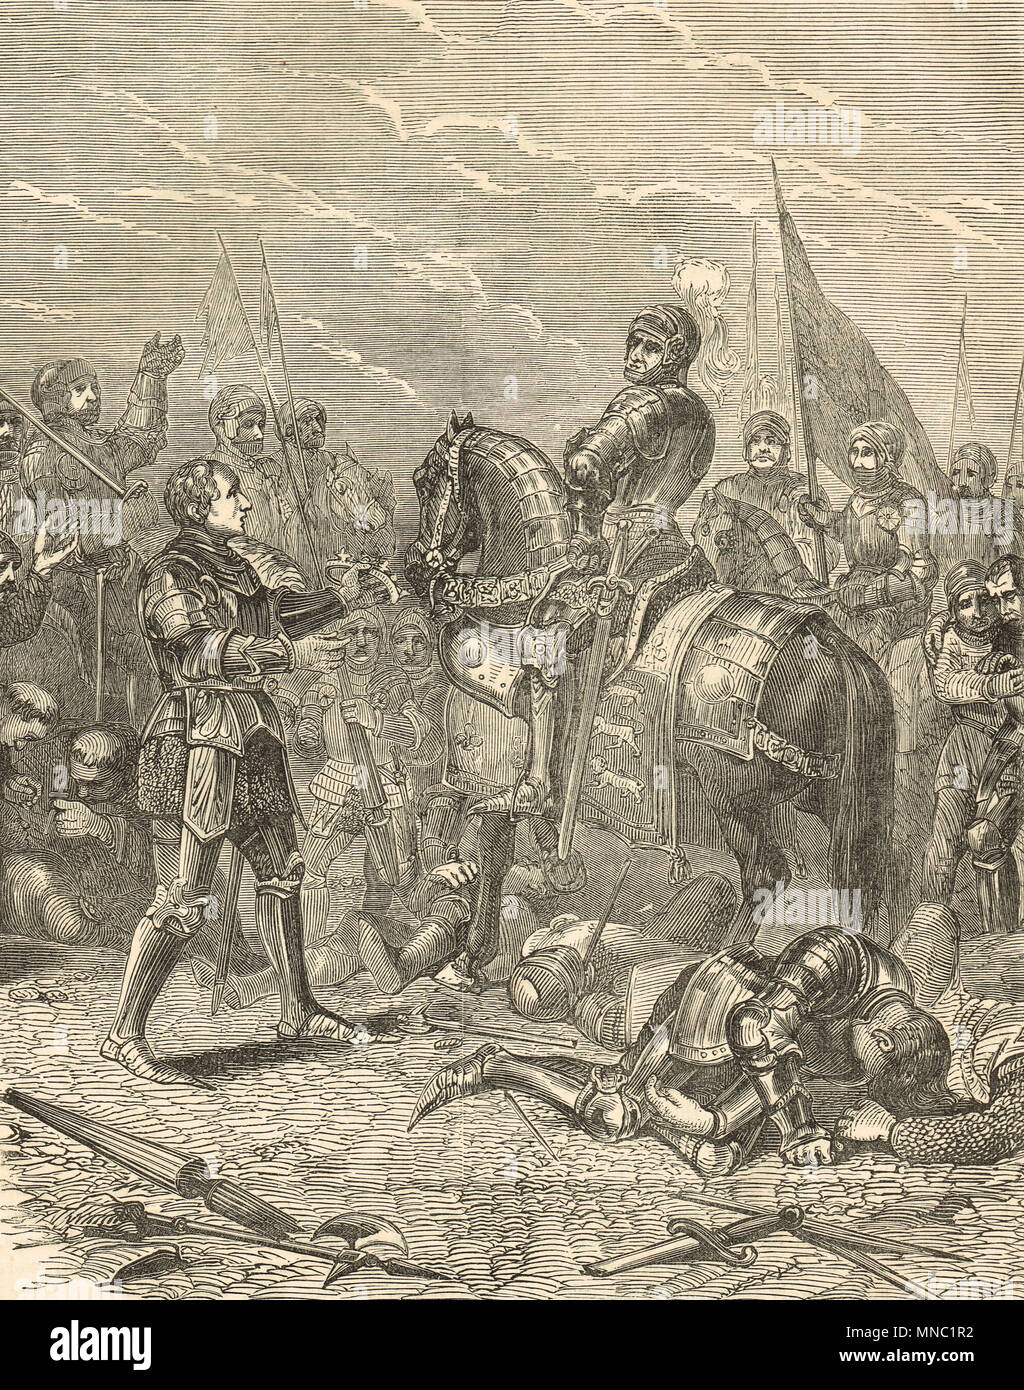 Battle of Bosworth Field, 22 August 1485, Lord William Stanley offering the crown of Richard III to Henry Tudor, second Earl of Richmond, later crowned King Henry VII - Stock Image